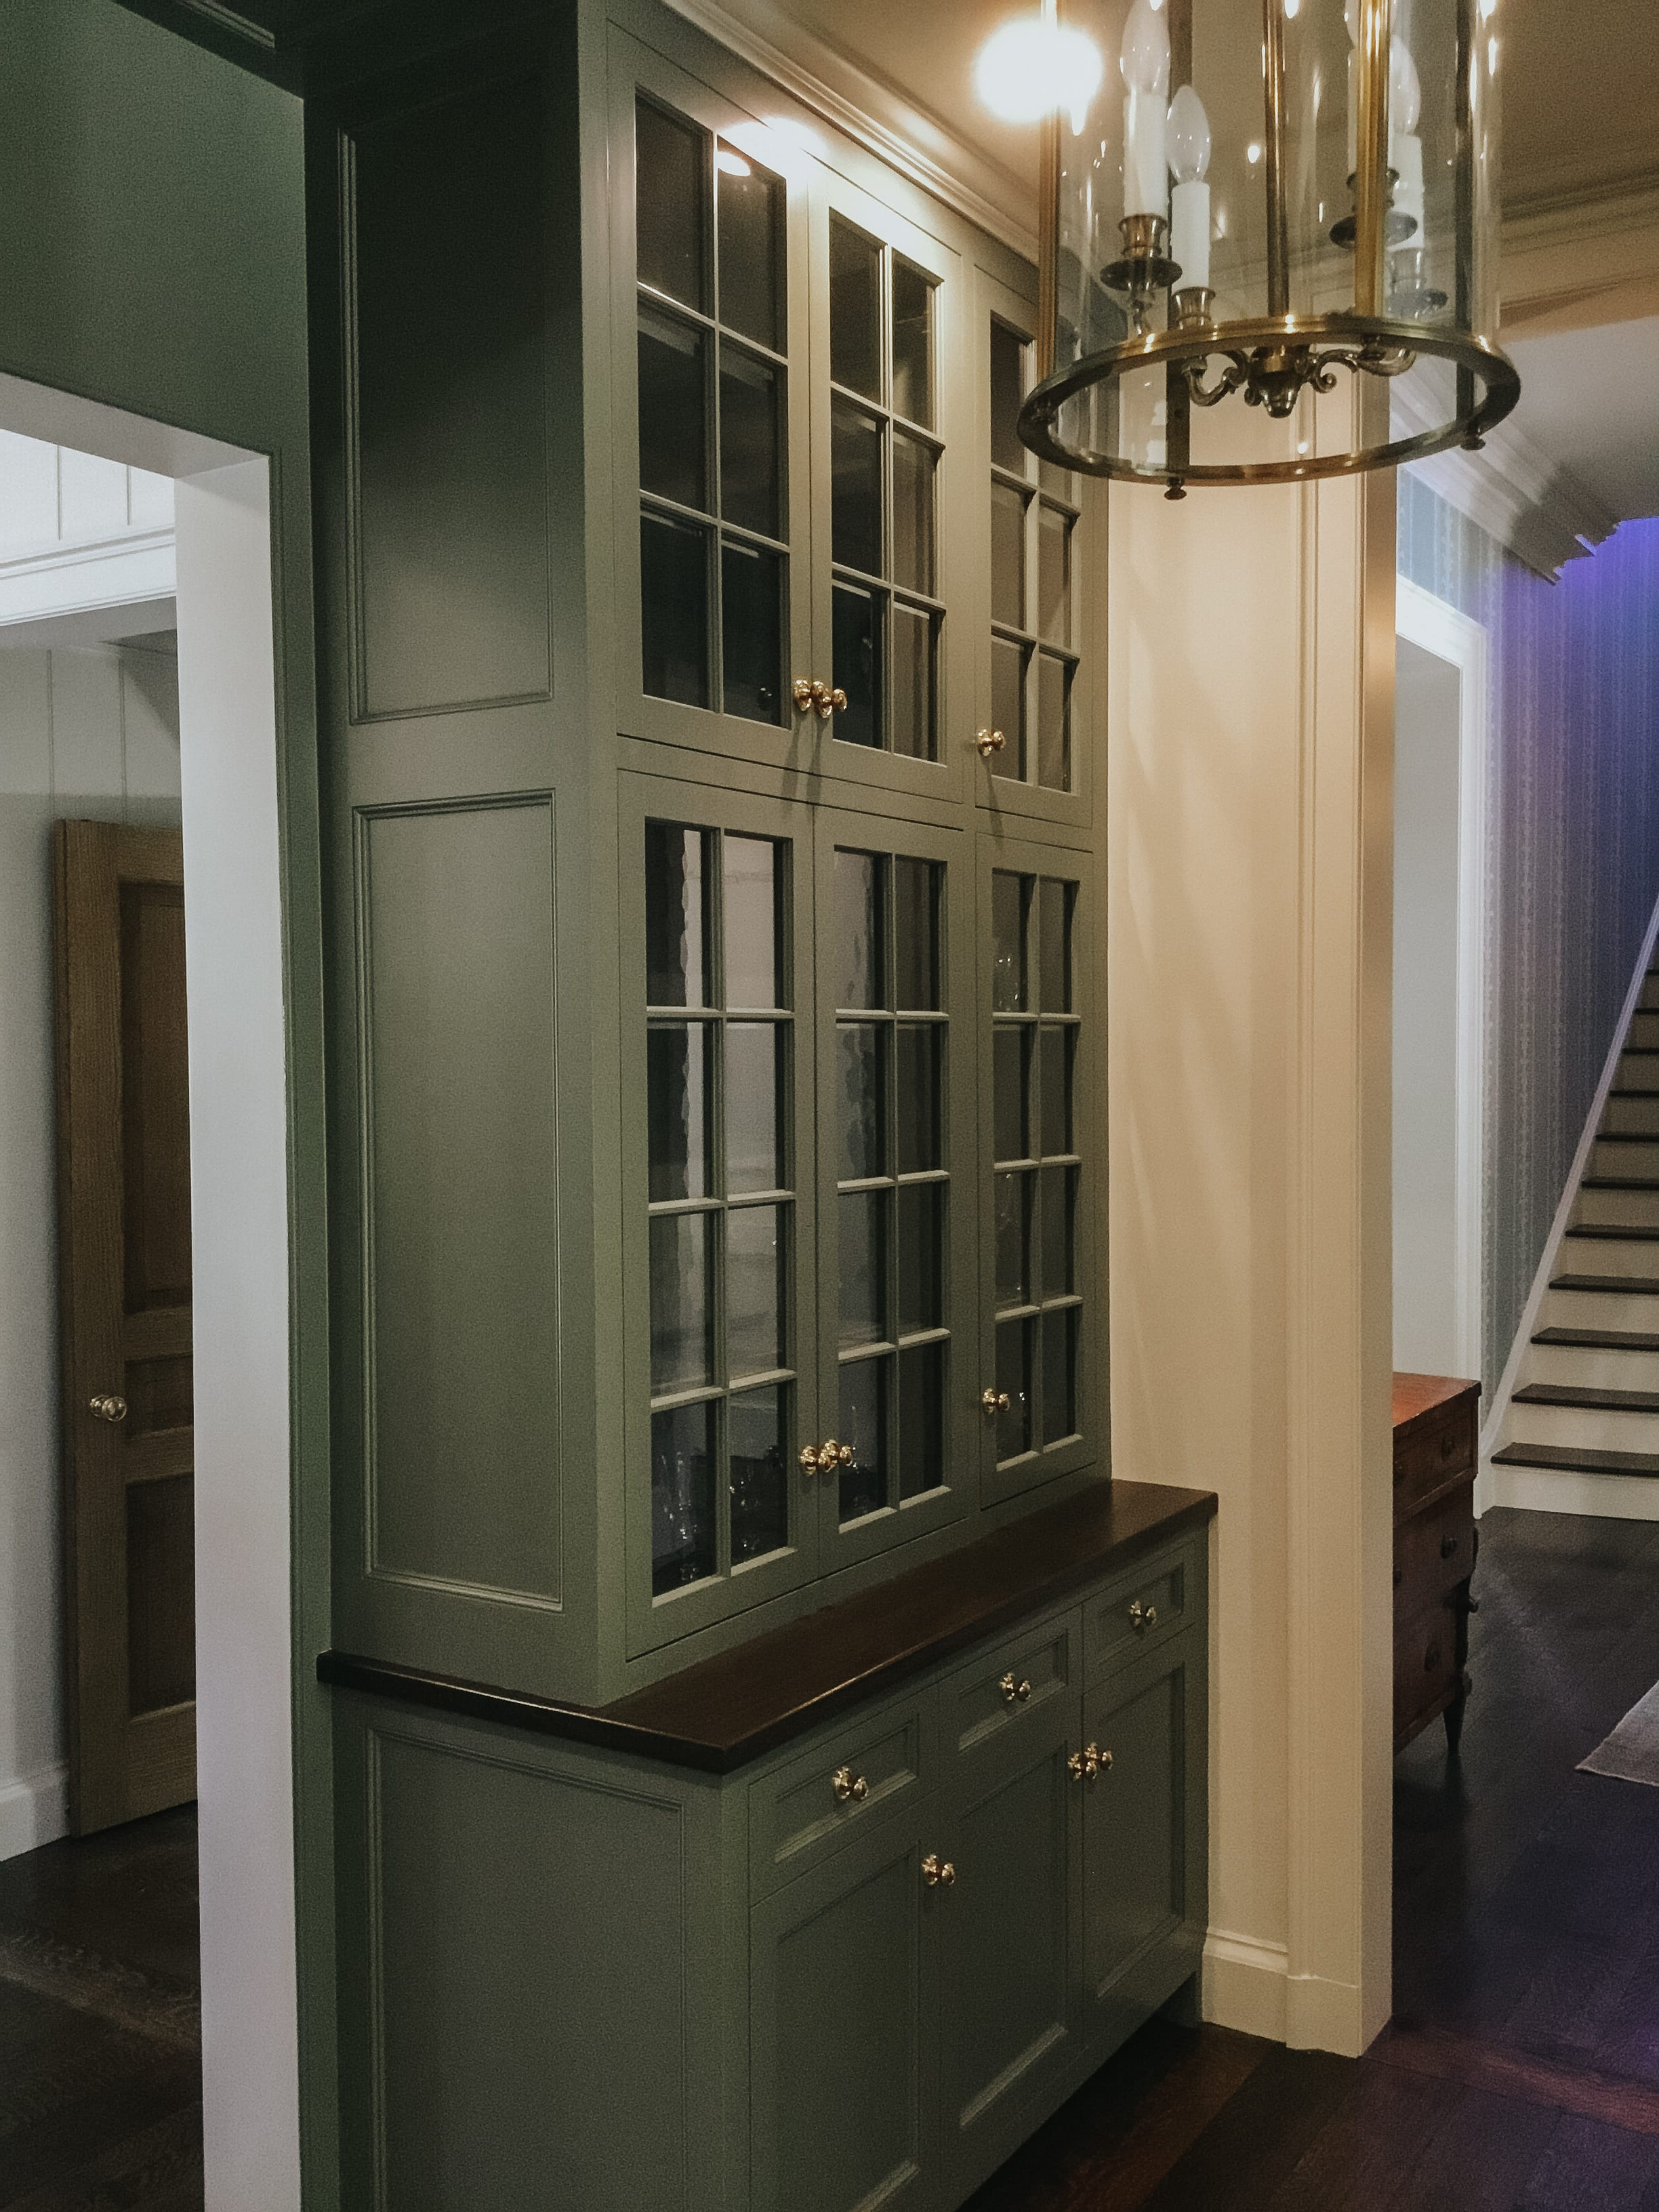 Dark Green Cabinets with Glass Windows side view